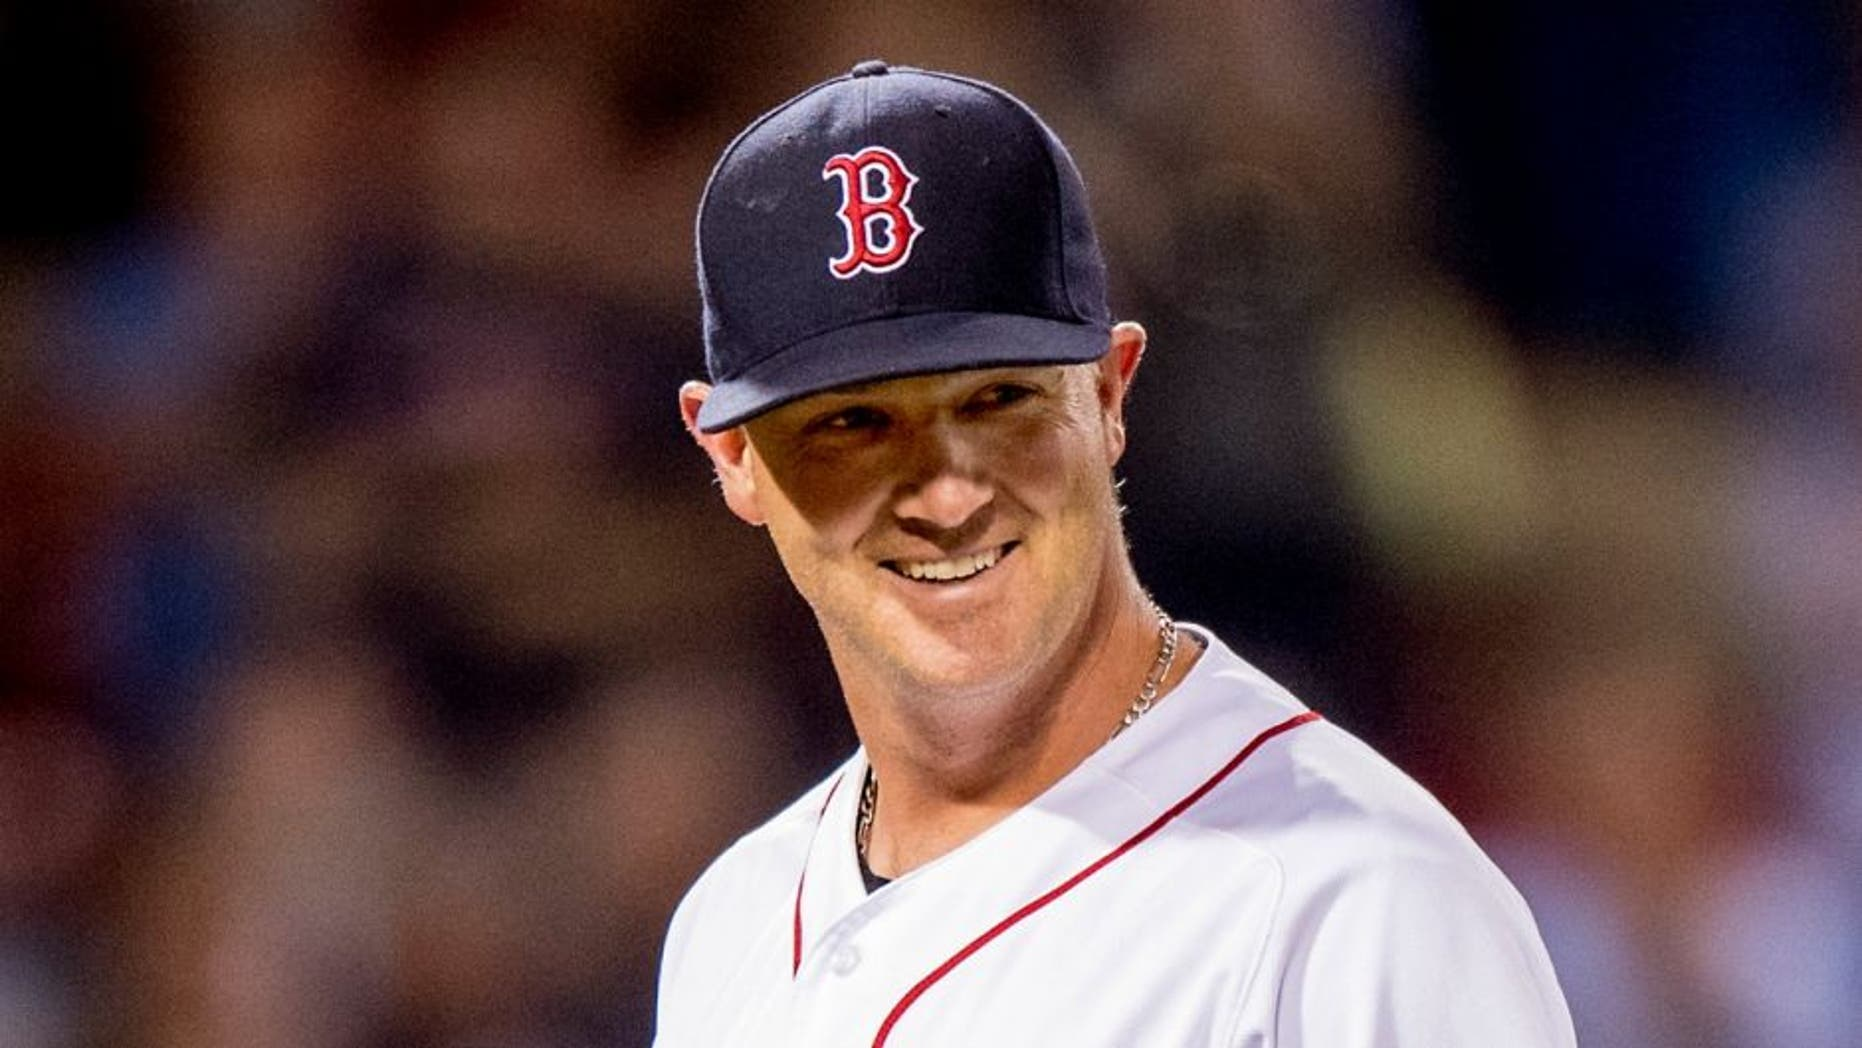 BOSTON, MA - JUNE 15: Steven Wright #35 of the Boston Red Sox reacts as he exits the game during the eighth inning of a game against the Baltimore Orioles on June 15, 2016 at Fenway Park in Boston, Massachusetts. (Photo by Billie Weiss/Boston Red Sox/Getty Images) *** Local Caption *** Steven Wright,BOSTON, MA - JUNE 15: Steven Wright #35 of the Boston Red Sox reacts as he exits the game during the eighth inning of a game against the Baltimore Orioles on June 15, 2016 at Fenway Park in Boston, Massachusetts. (Photo by Billie Weiss/Boston Red Sox/Getty Images)